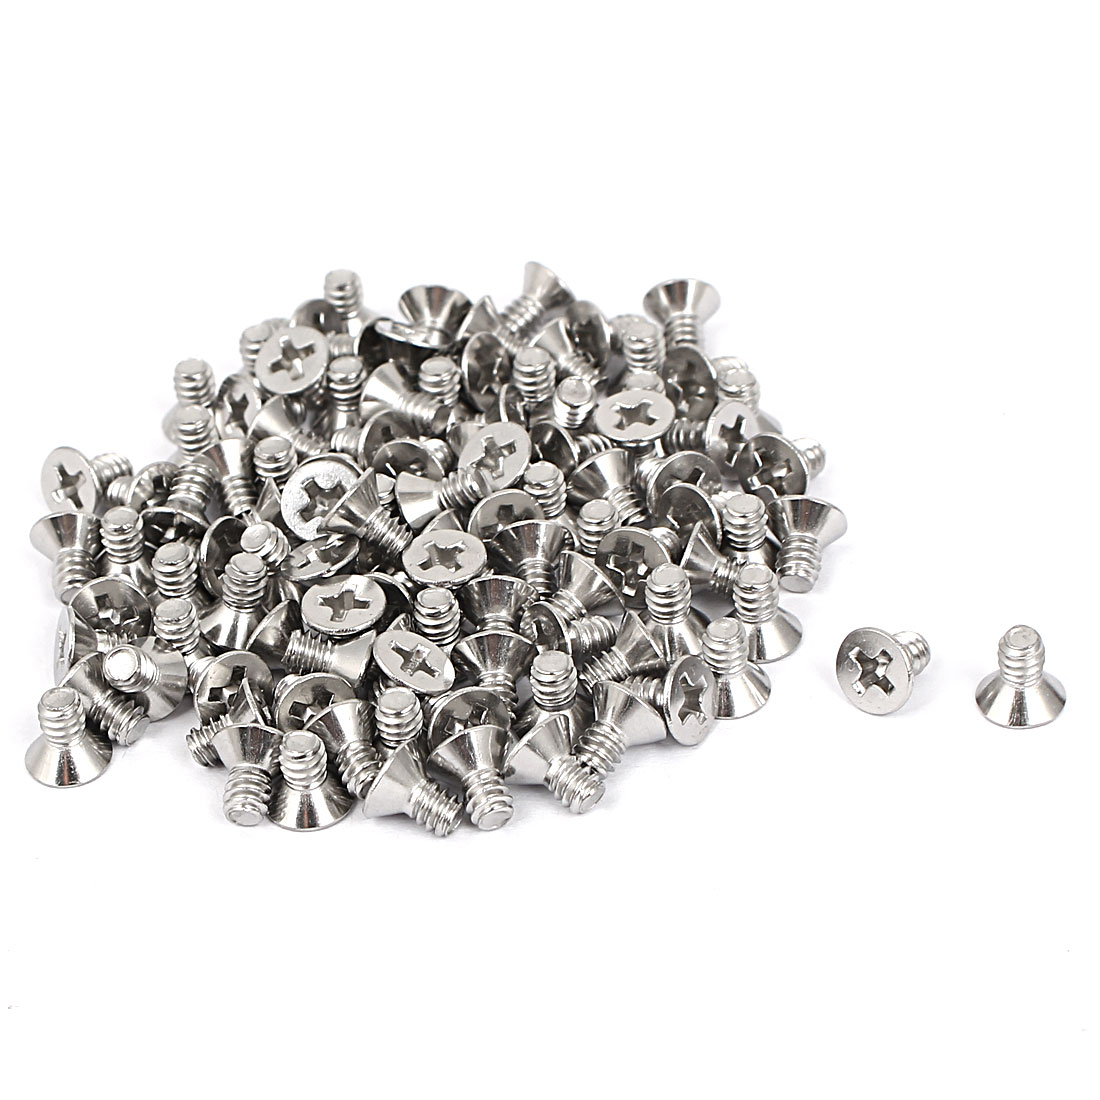 "6#-32x1/4"" Stainless Steel Phillips Flat Countersunk Head Machine Screws 100pcs"